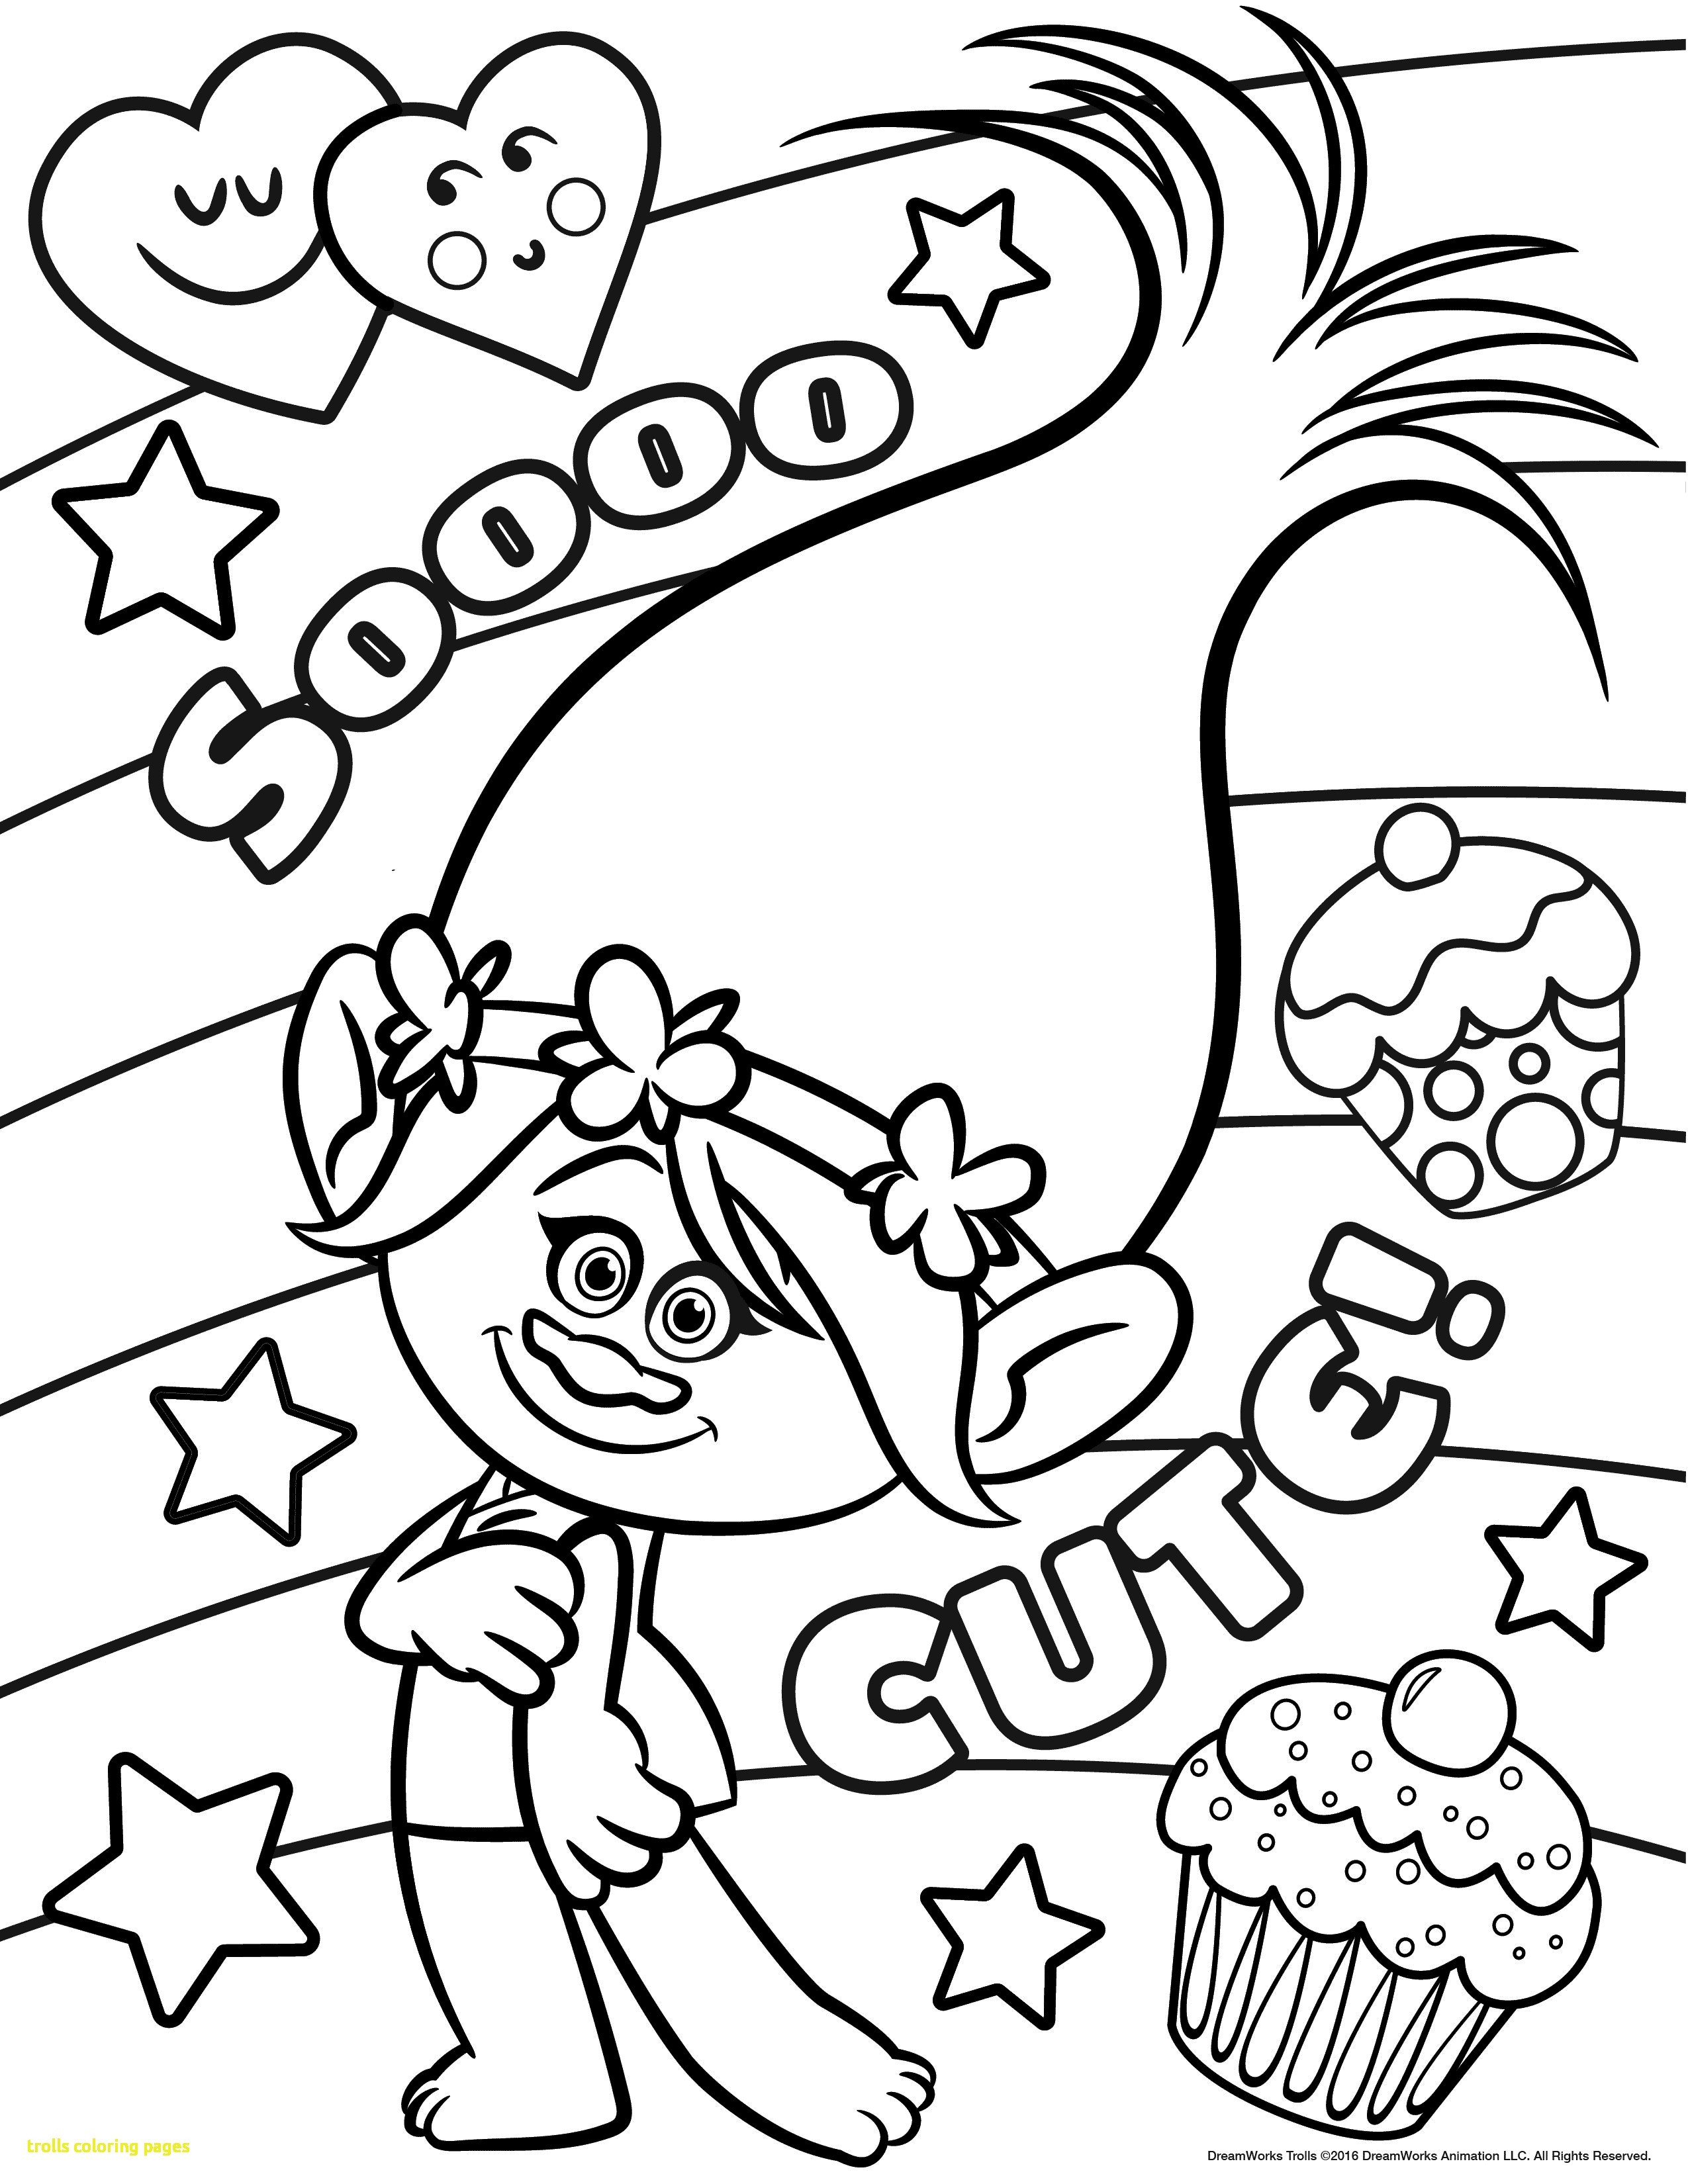 Dreamworks Home Coloring Pages At Getdrawings Com Free For